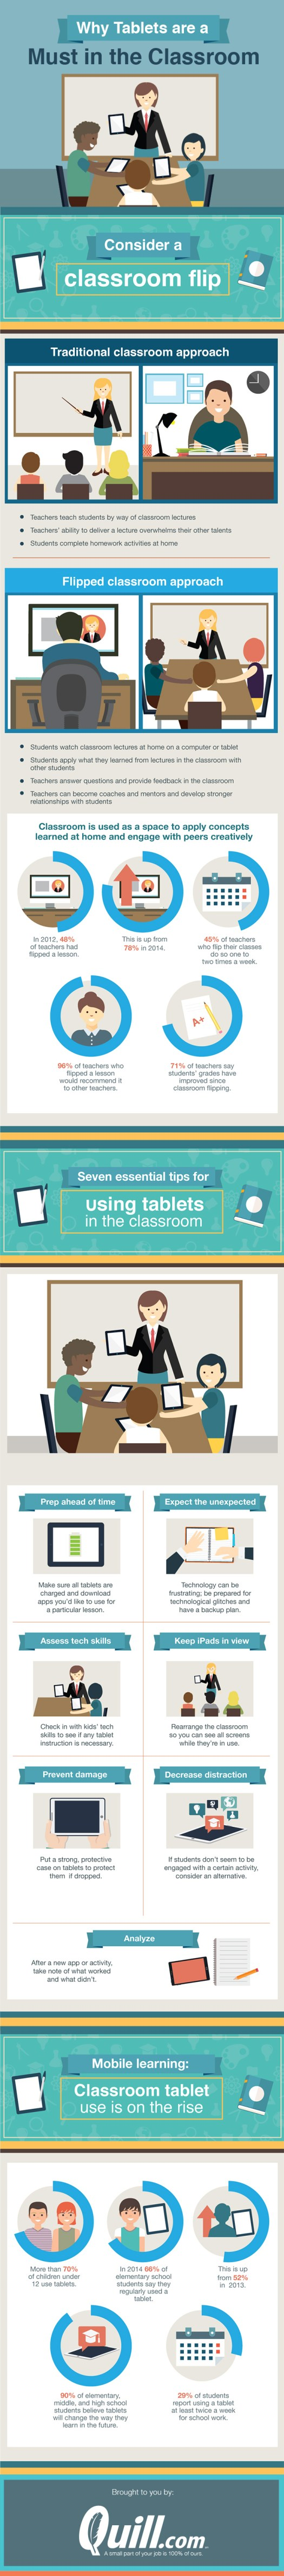 Tablets in the Classroom